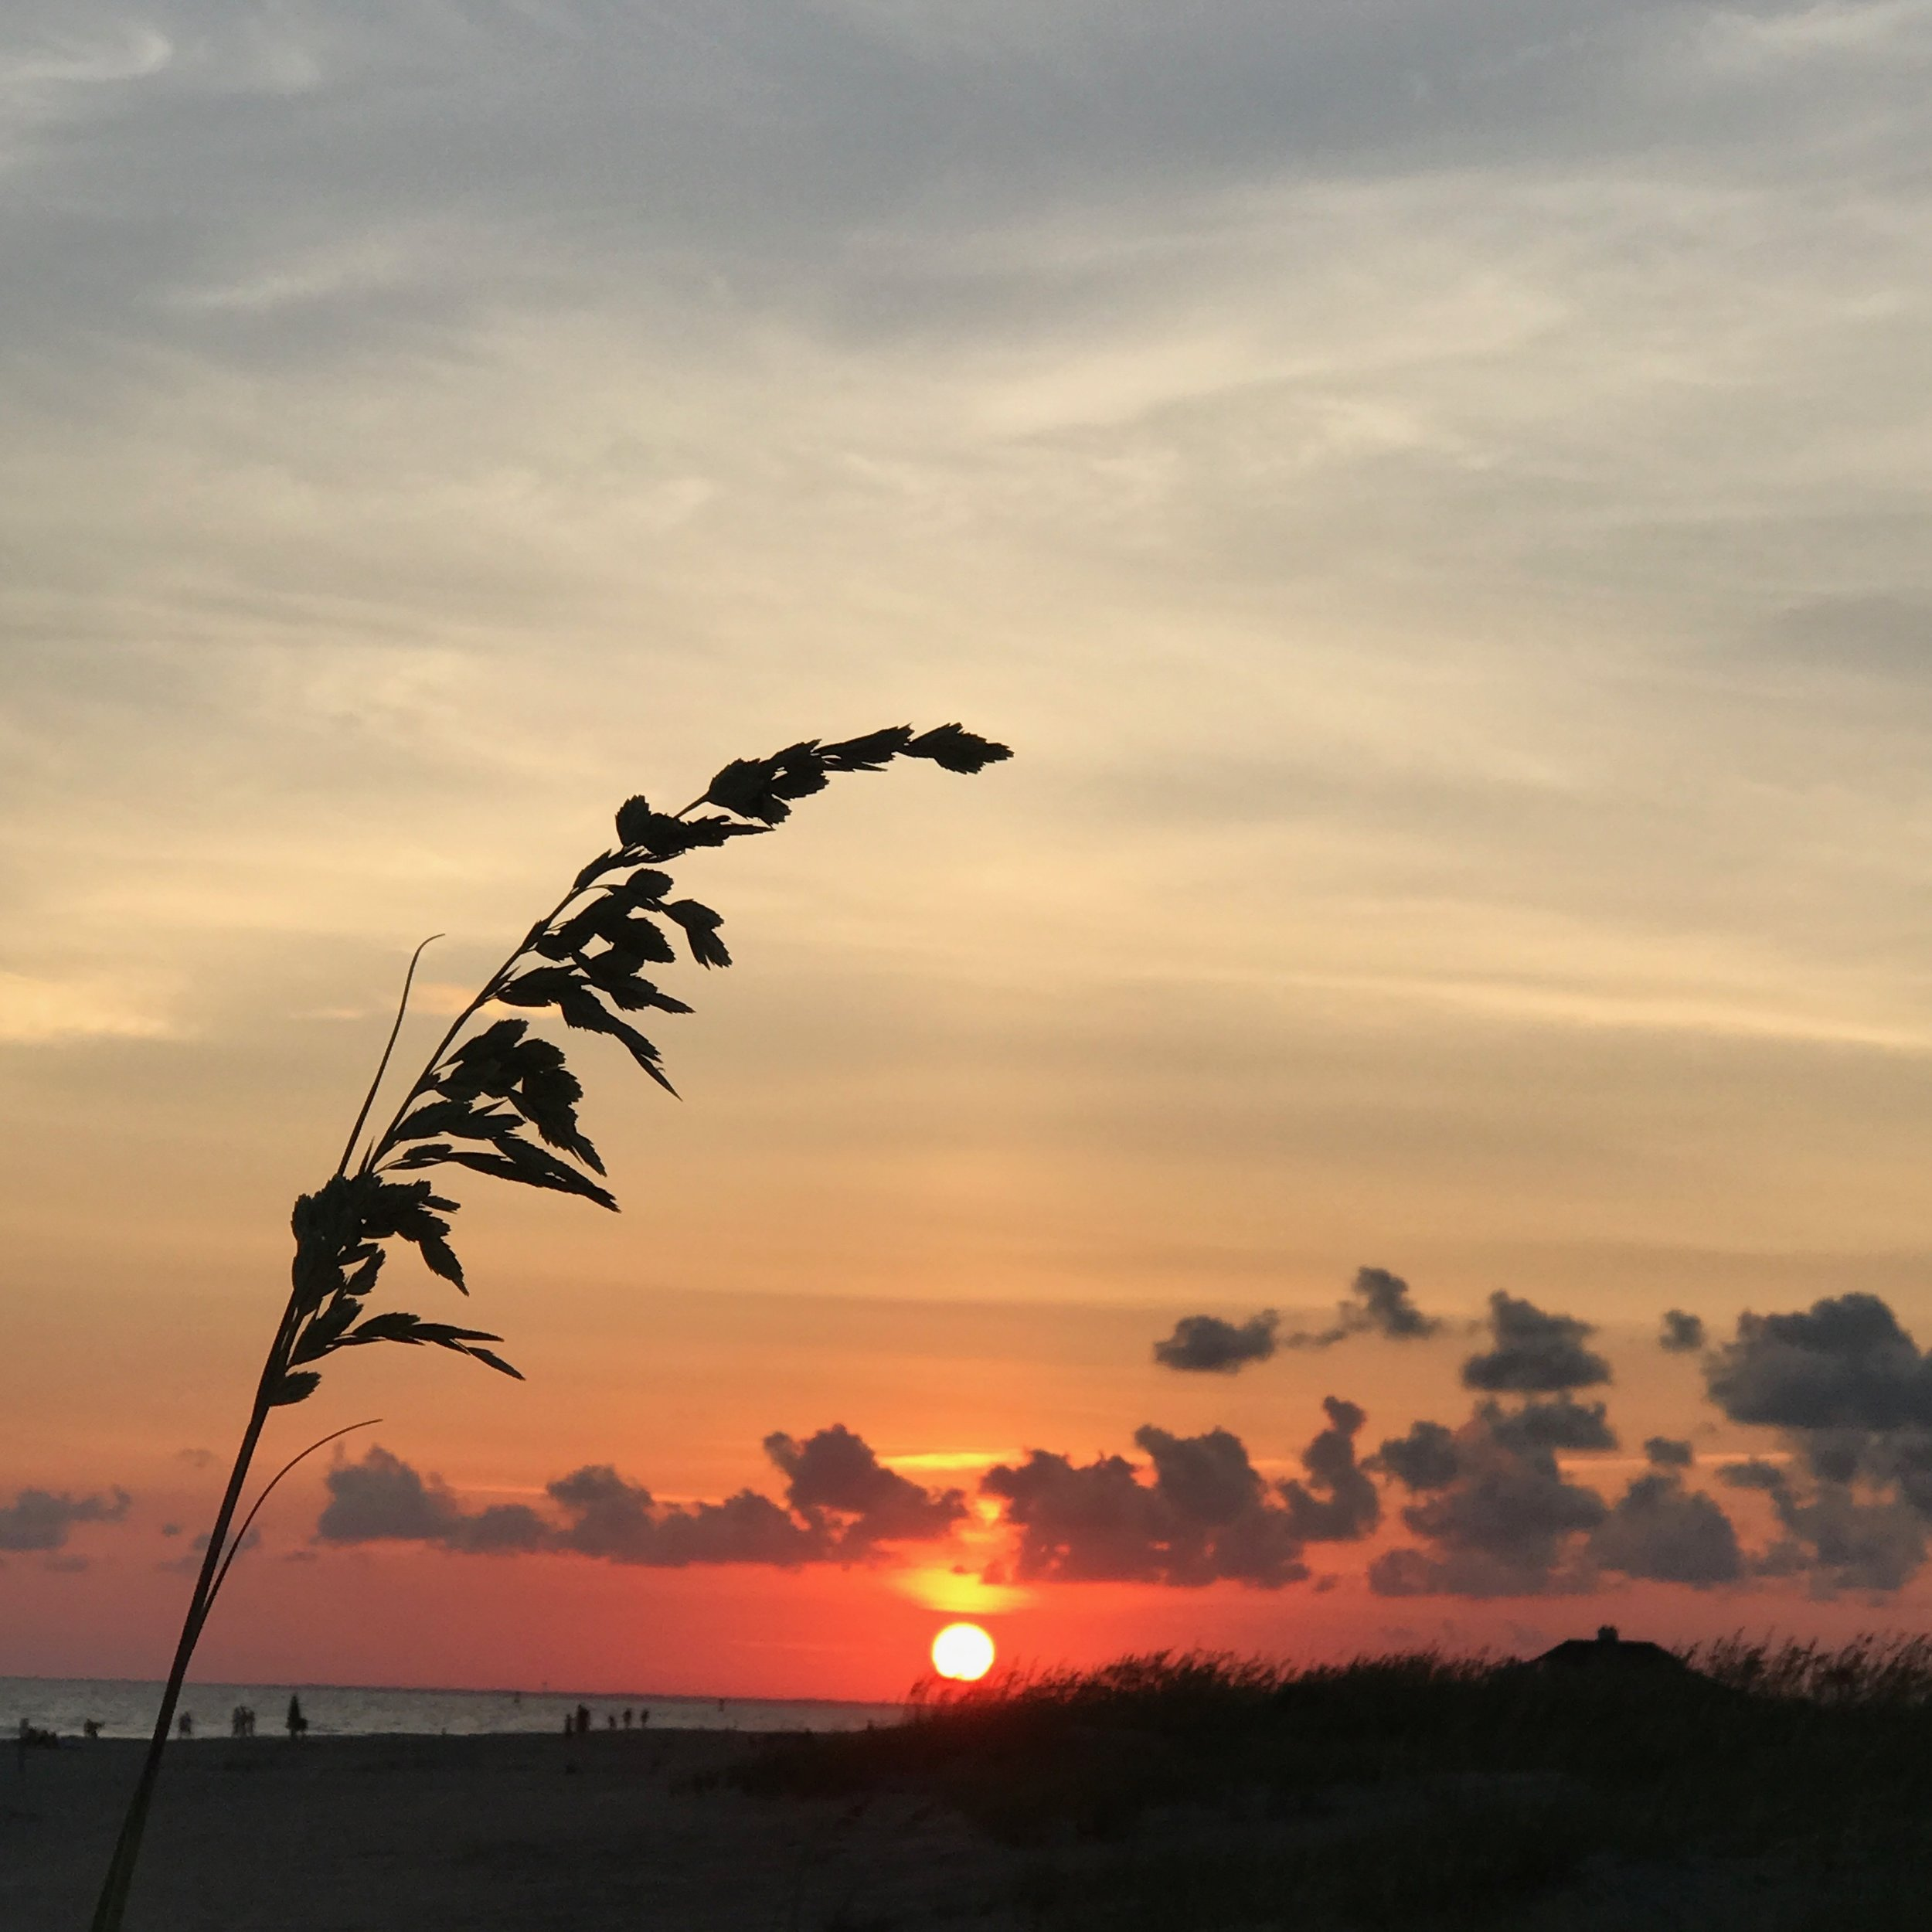 Sunset at Bald Head Island